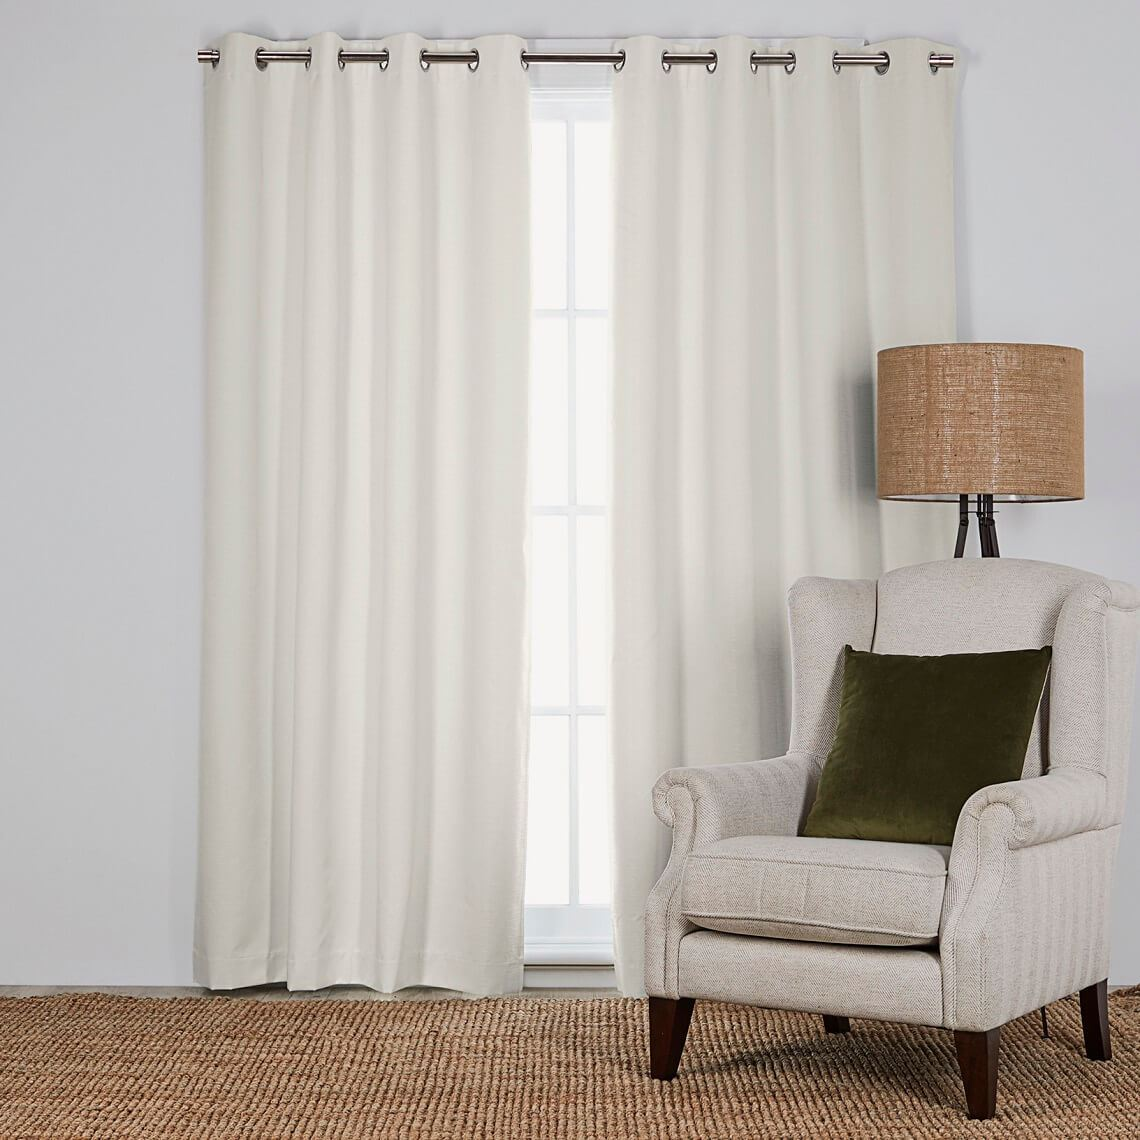 Belconnen Blockout Eyelet Curtain Size W 140cm x D 0cm x H 230cm in Snow 100% Polyester/Acrylic Flock Coating/Stainless Steel Freedom by Freedom, a Curtains for sale on Style Sourcebook